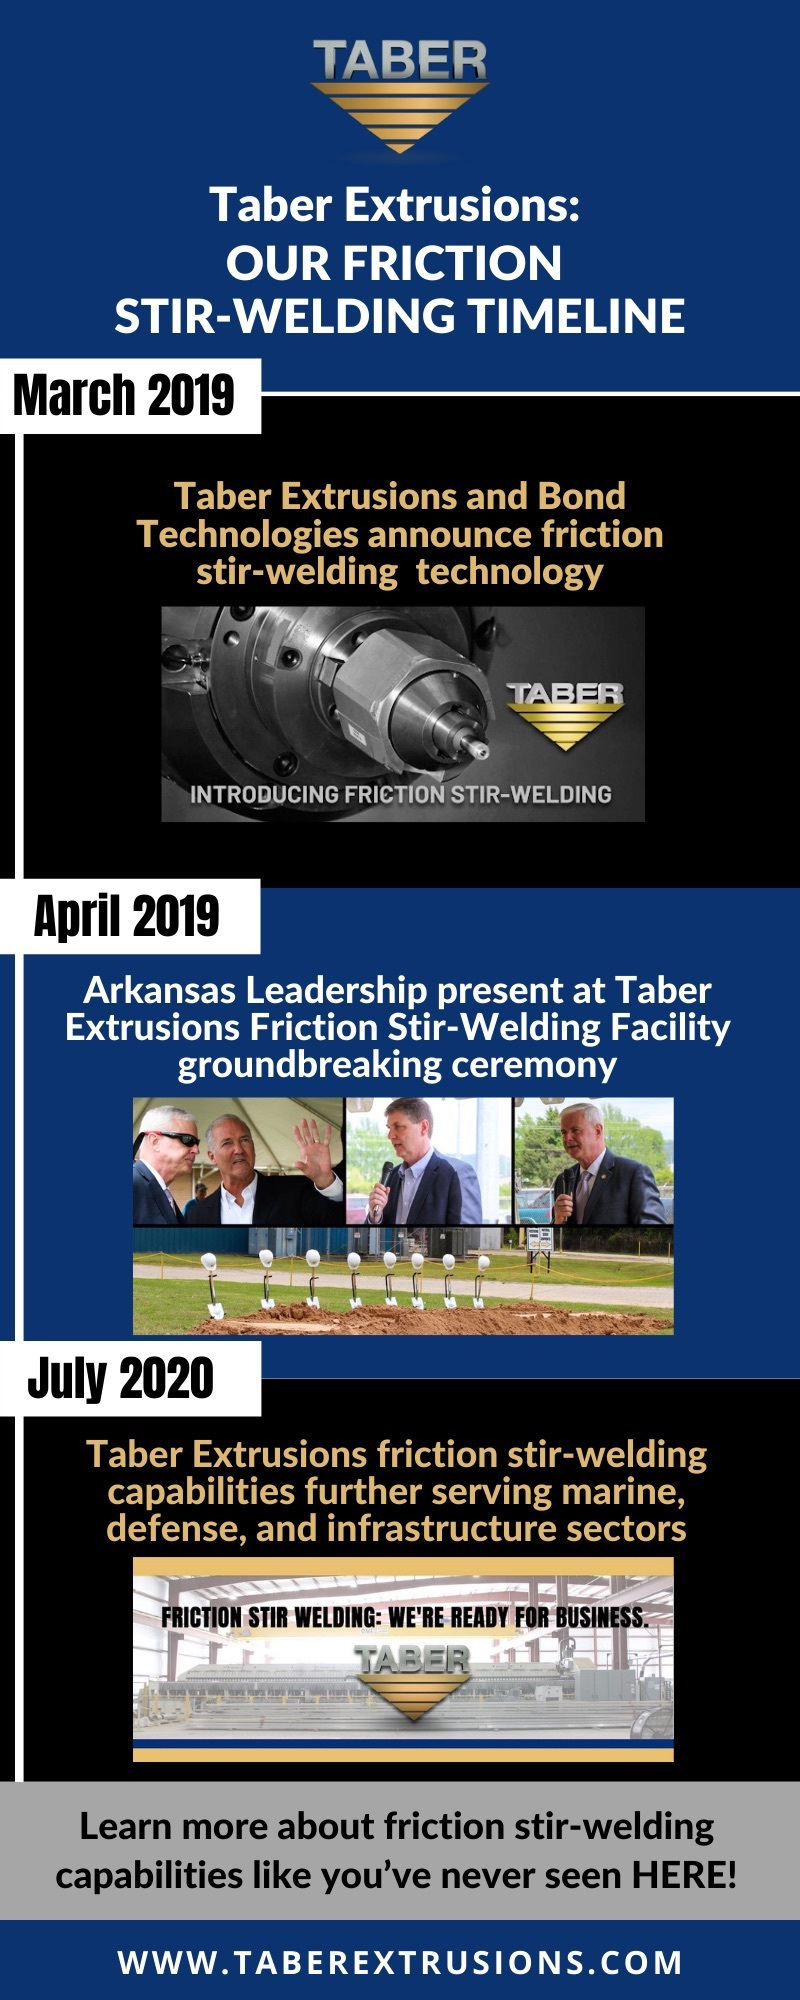 """: Infographic that illustrates Taber's friction stir-welding timeline: 1. March 2019 2. April 2019 3. July 2020 – ending with a CTA that reads, """"Learn more about friction stir-welding capabilities like you've never seen HERE!''"""